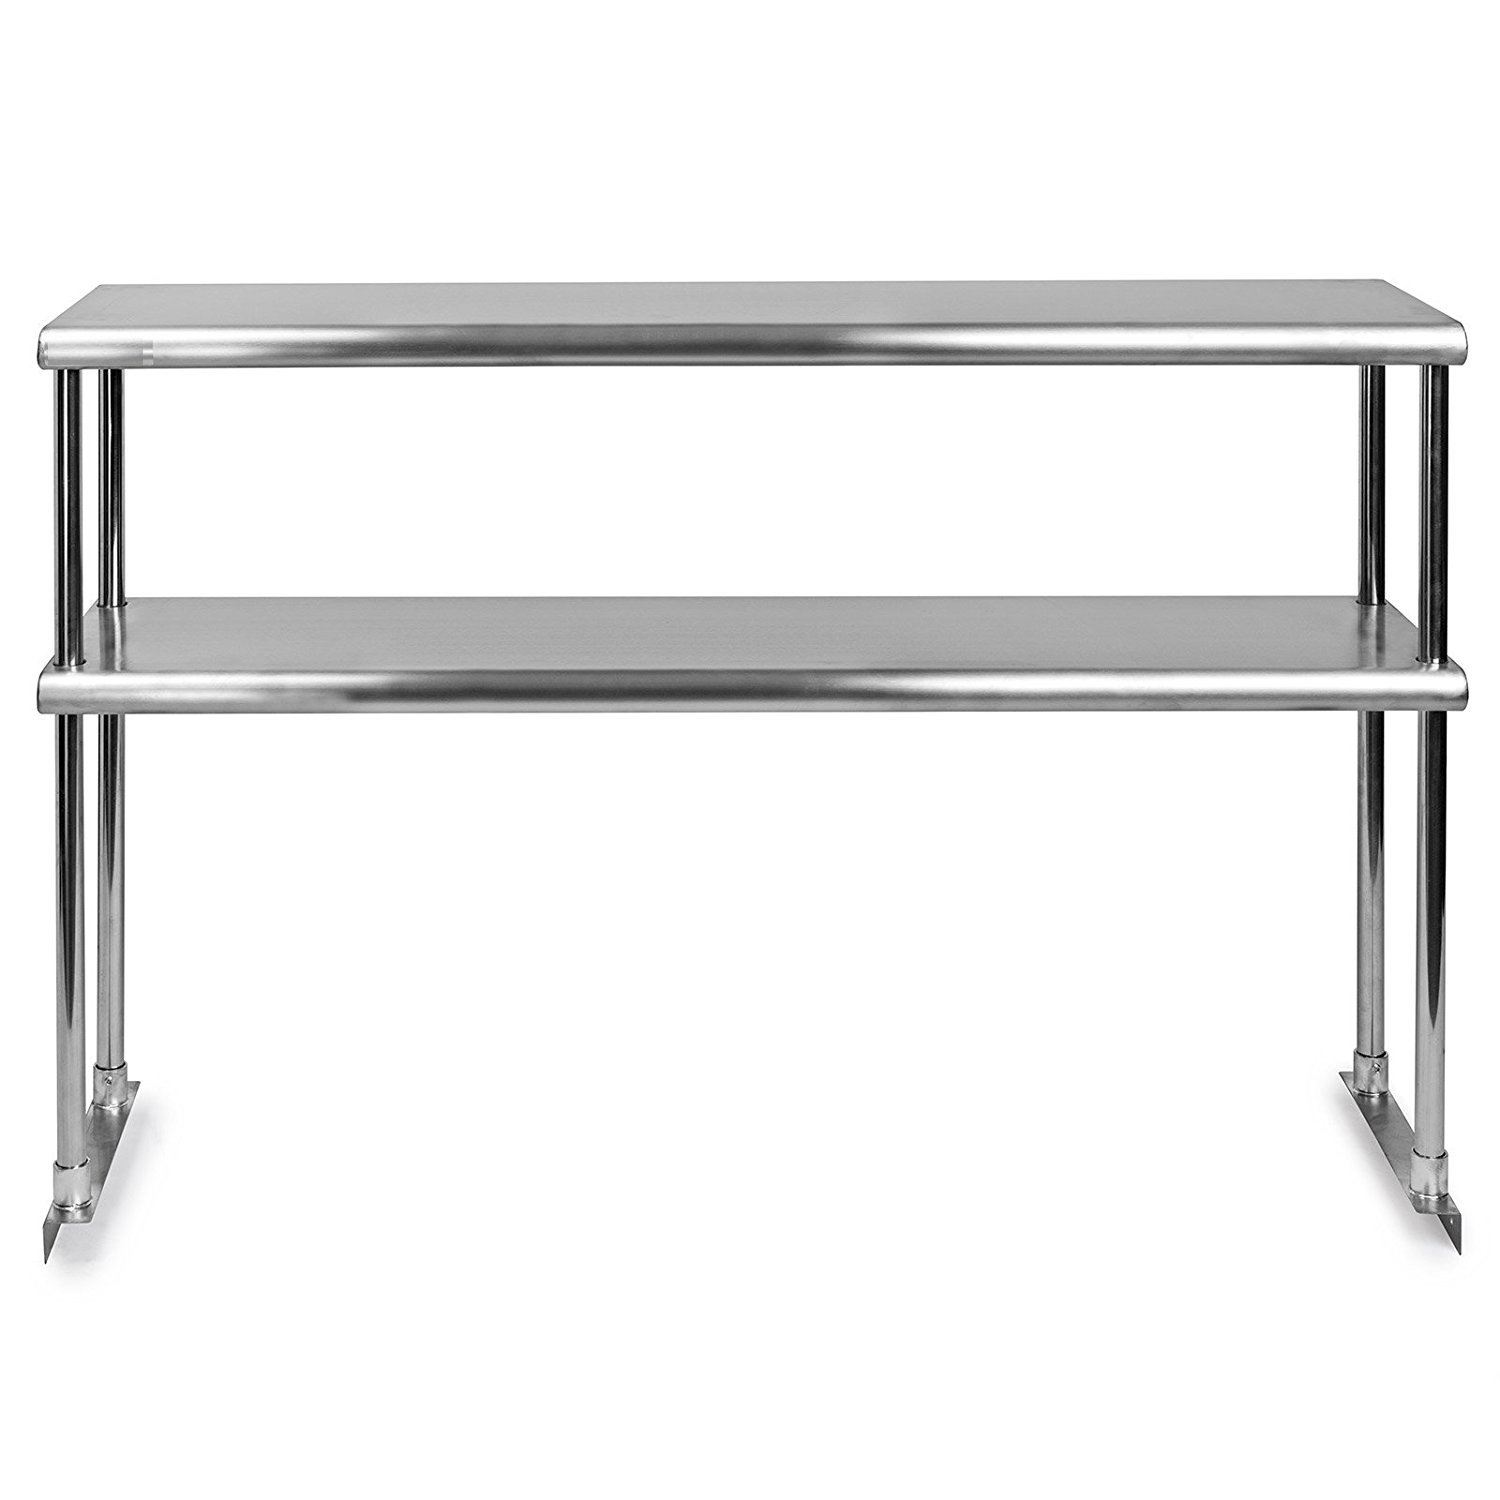 KPS Stainless Steel Double Overshelf for Prep Work Table 18 x 60 - NSF